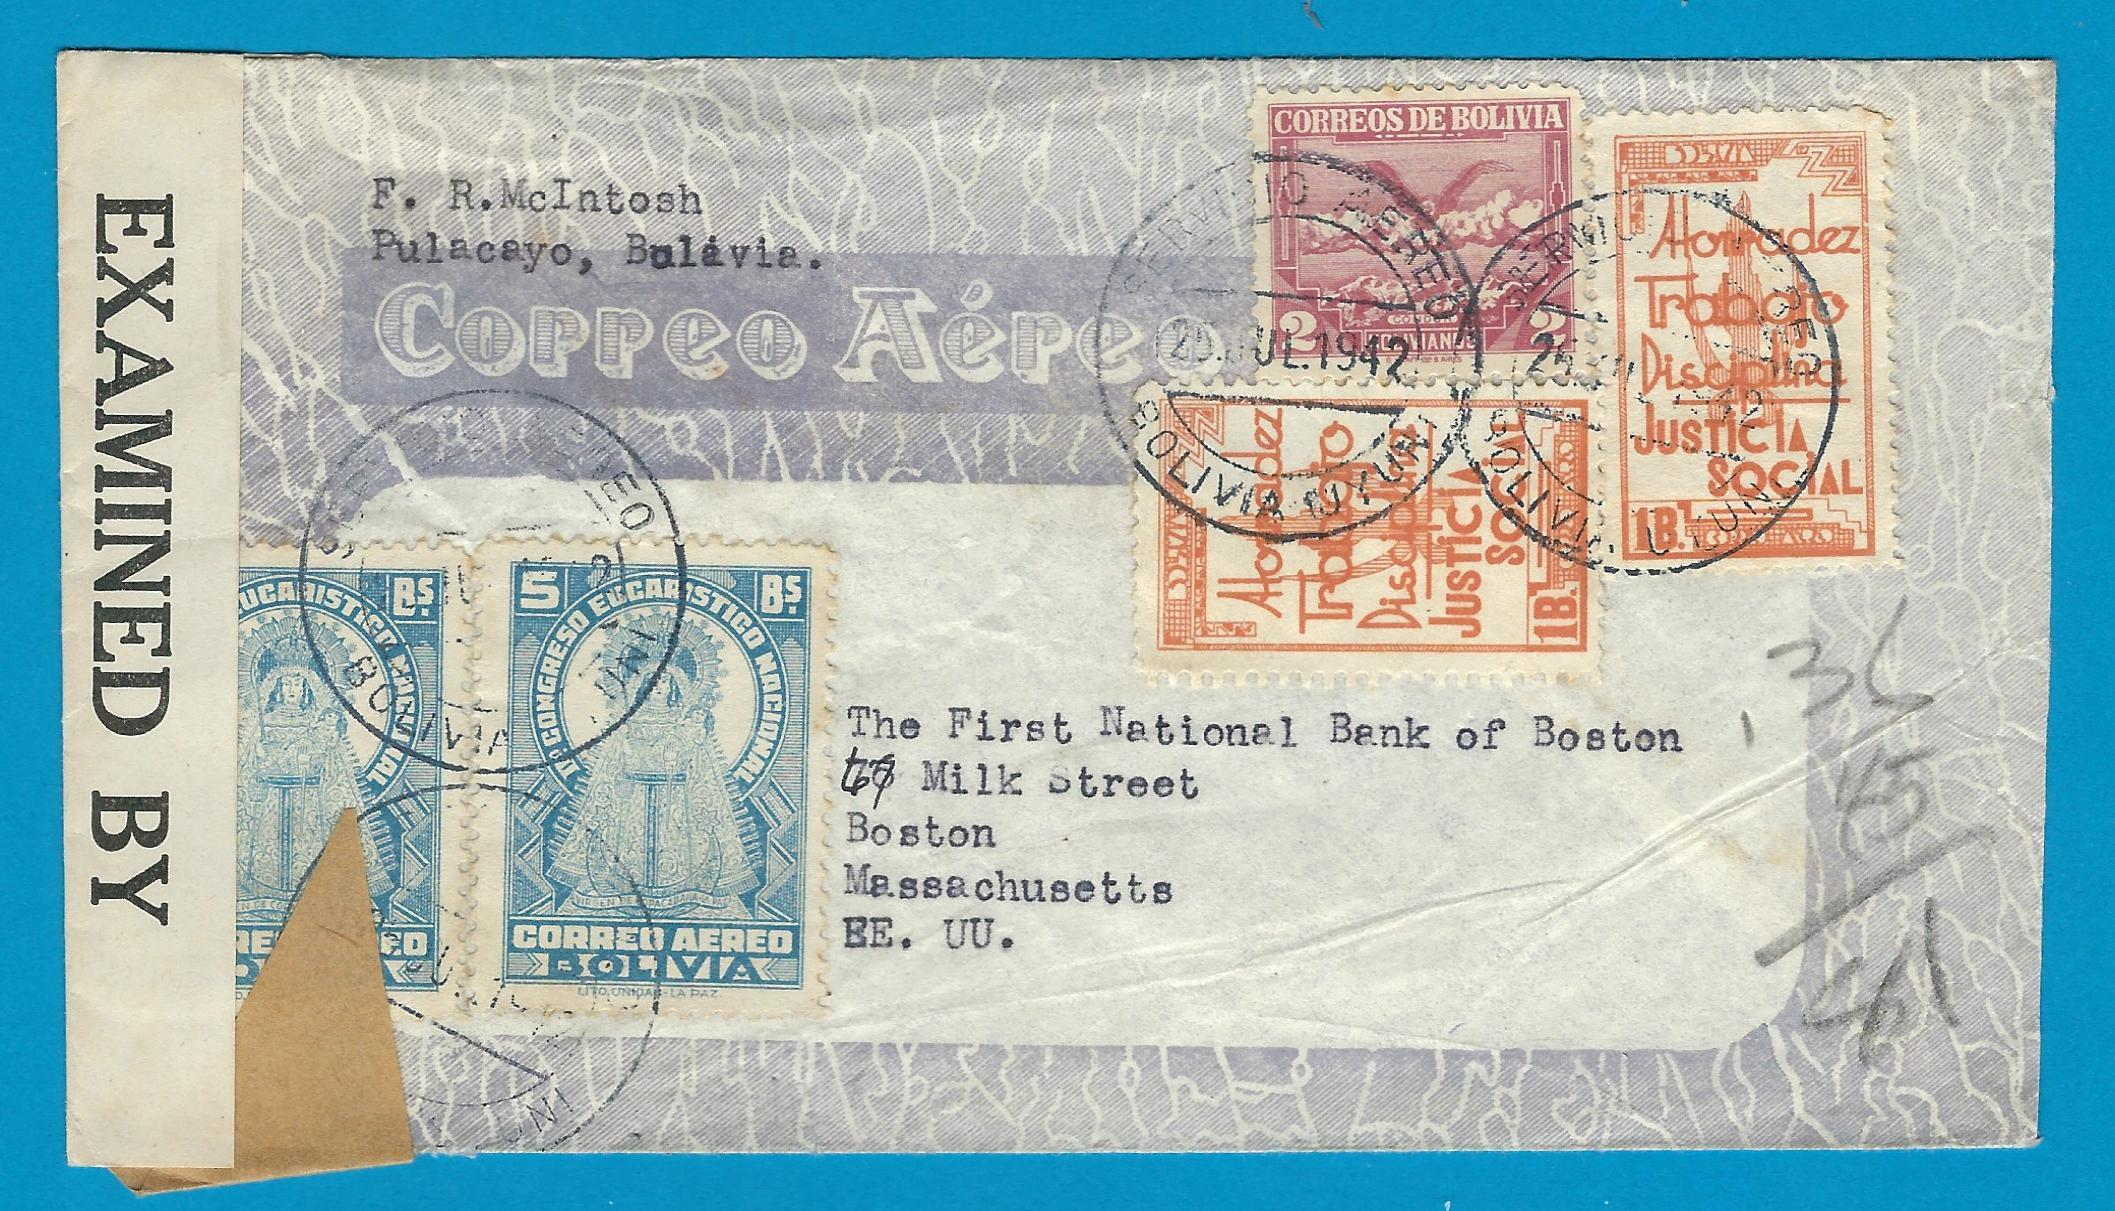 BOLIVIA censor air cover 1942 Uyuni to USA BOL033